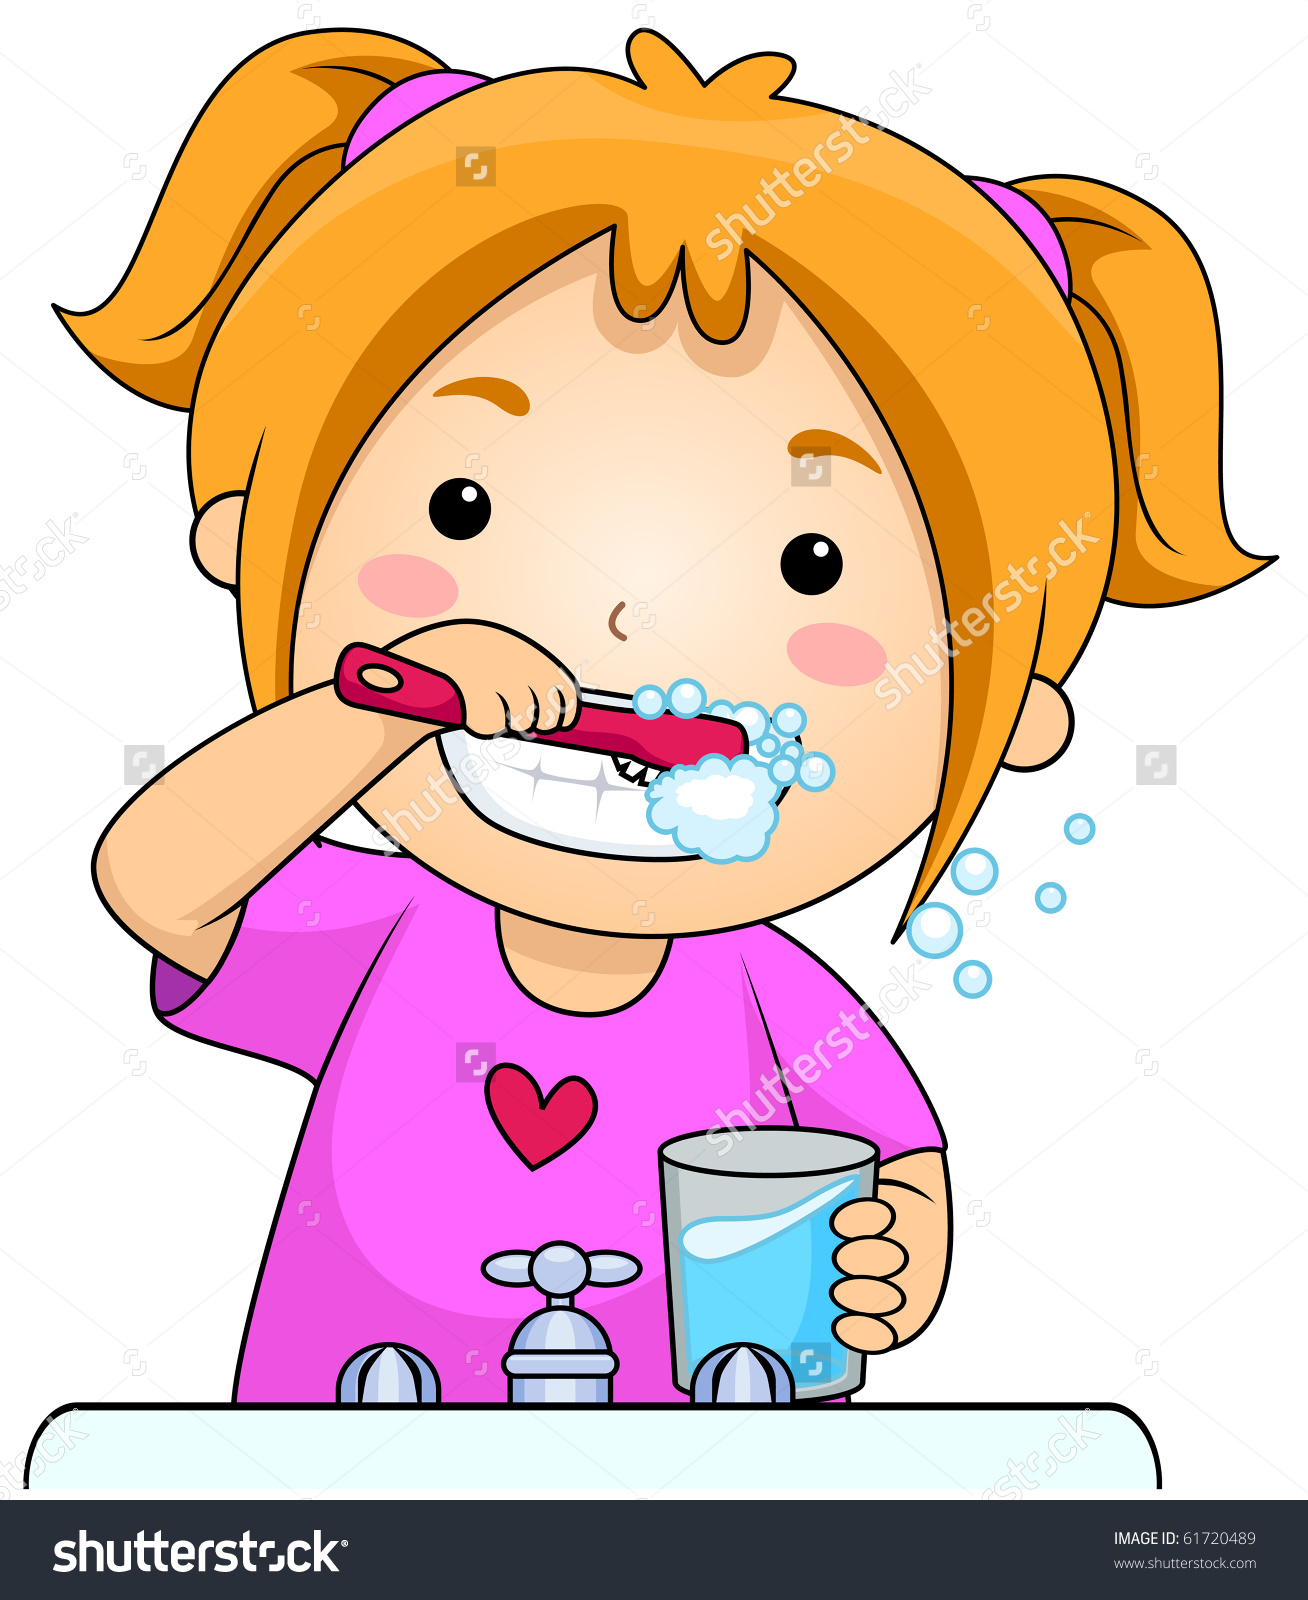 Dental Girl Brushing Teeth 1030 Classroo-Dental Girl Brushing Teeth 1030 Classroom Clipart. Save to a lightbox-9